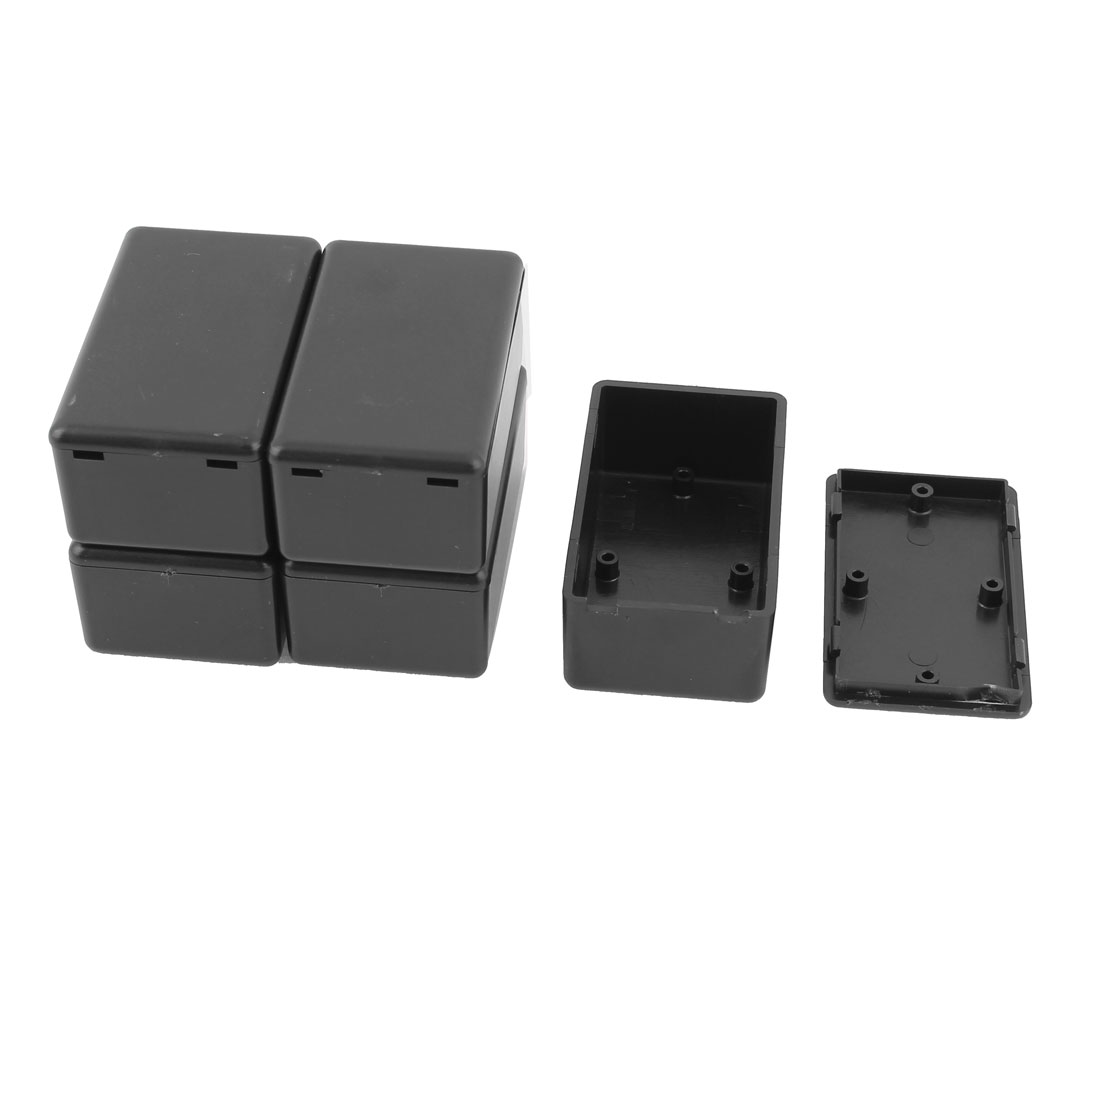 5pcs Waterproof Plastic Electric Project Case Junction Box 60x36x25mm